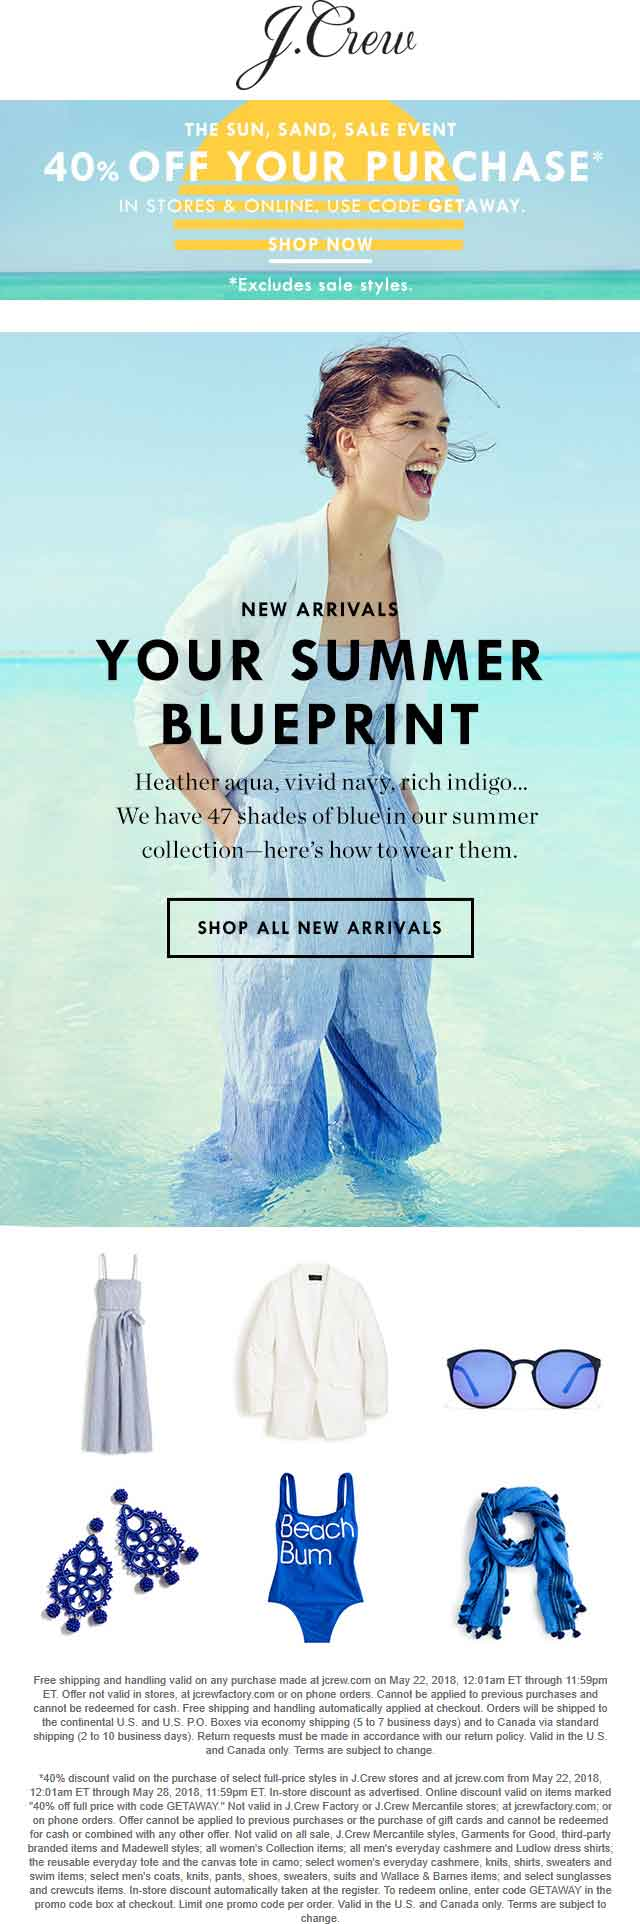 J.Crew Coupon March 2019 40% off at J.Crew, or online via promo code GETAWAY